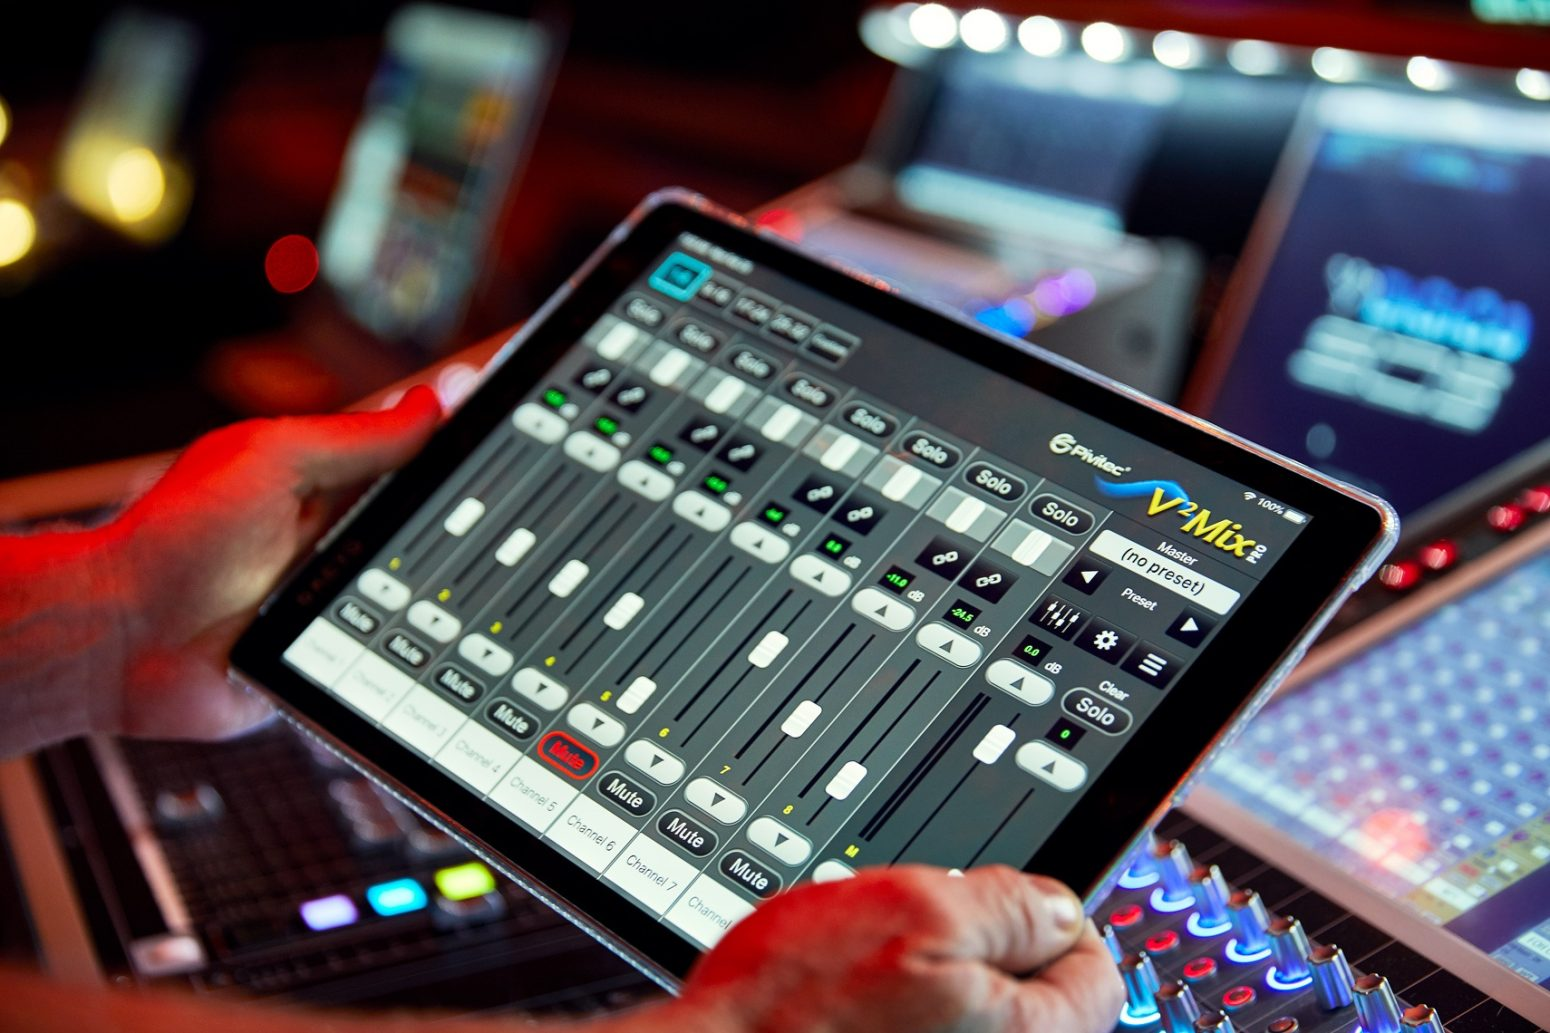 Paragon's audio designs for First Baptist Church Naples included this sound system management software.